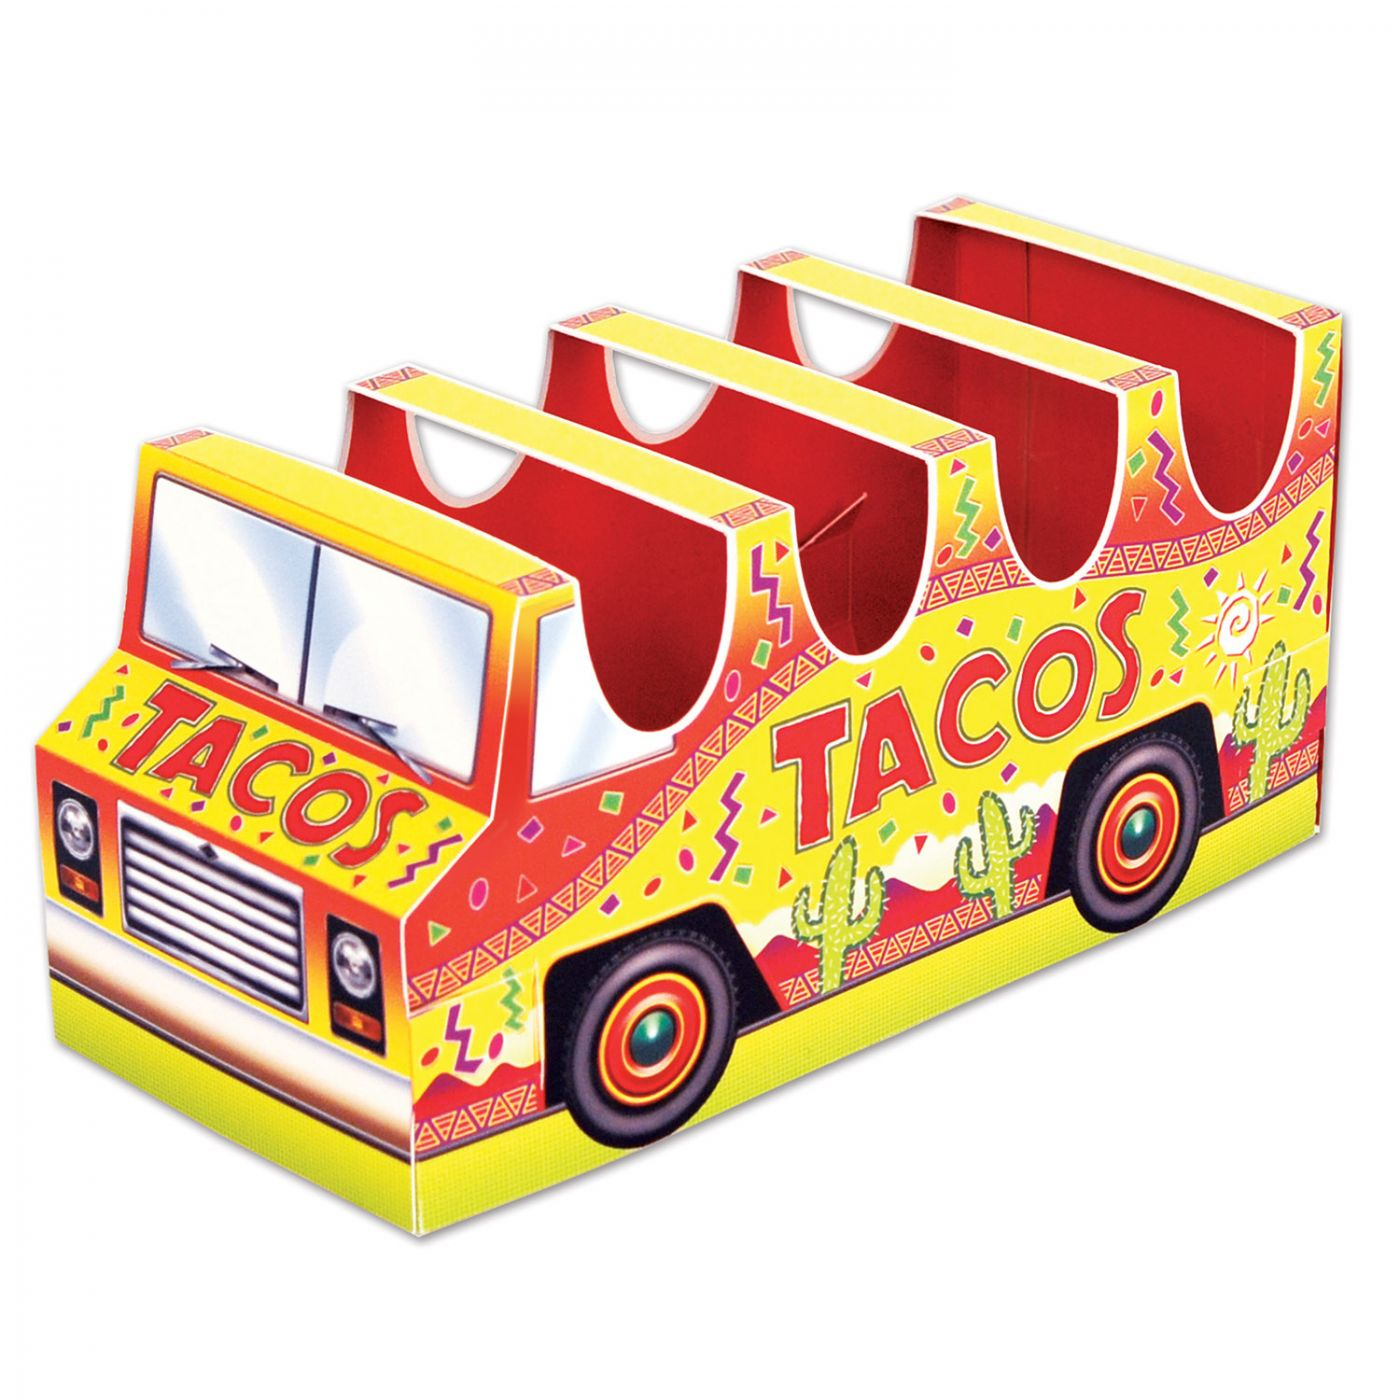 Image of 3-D Taco Truck Centerpiece